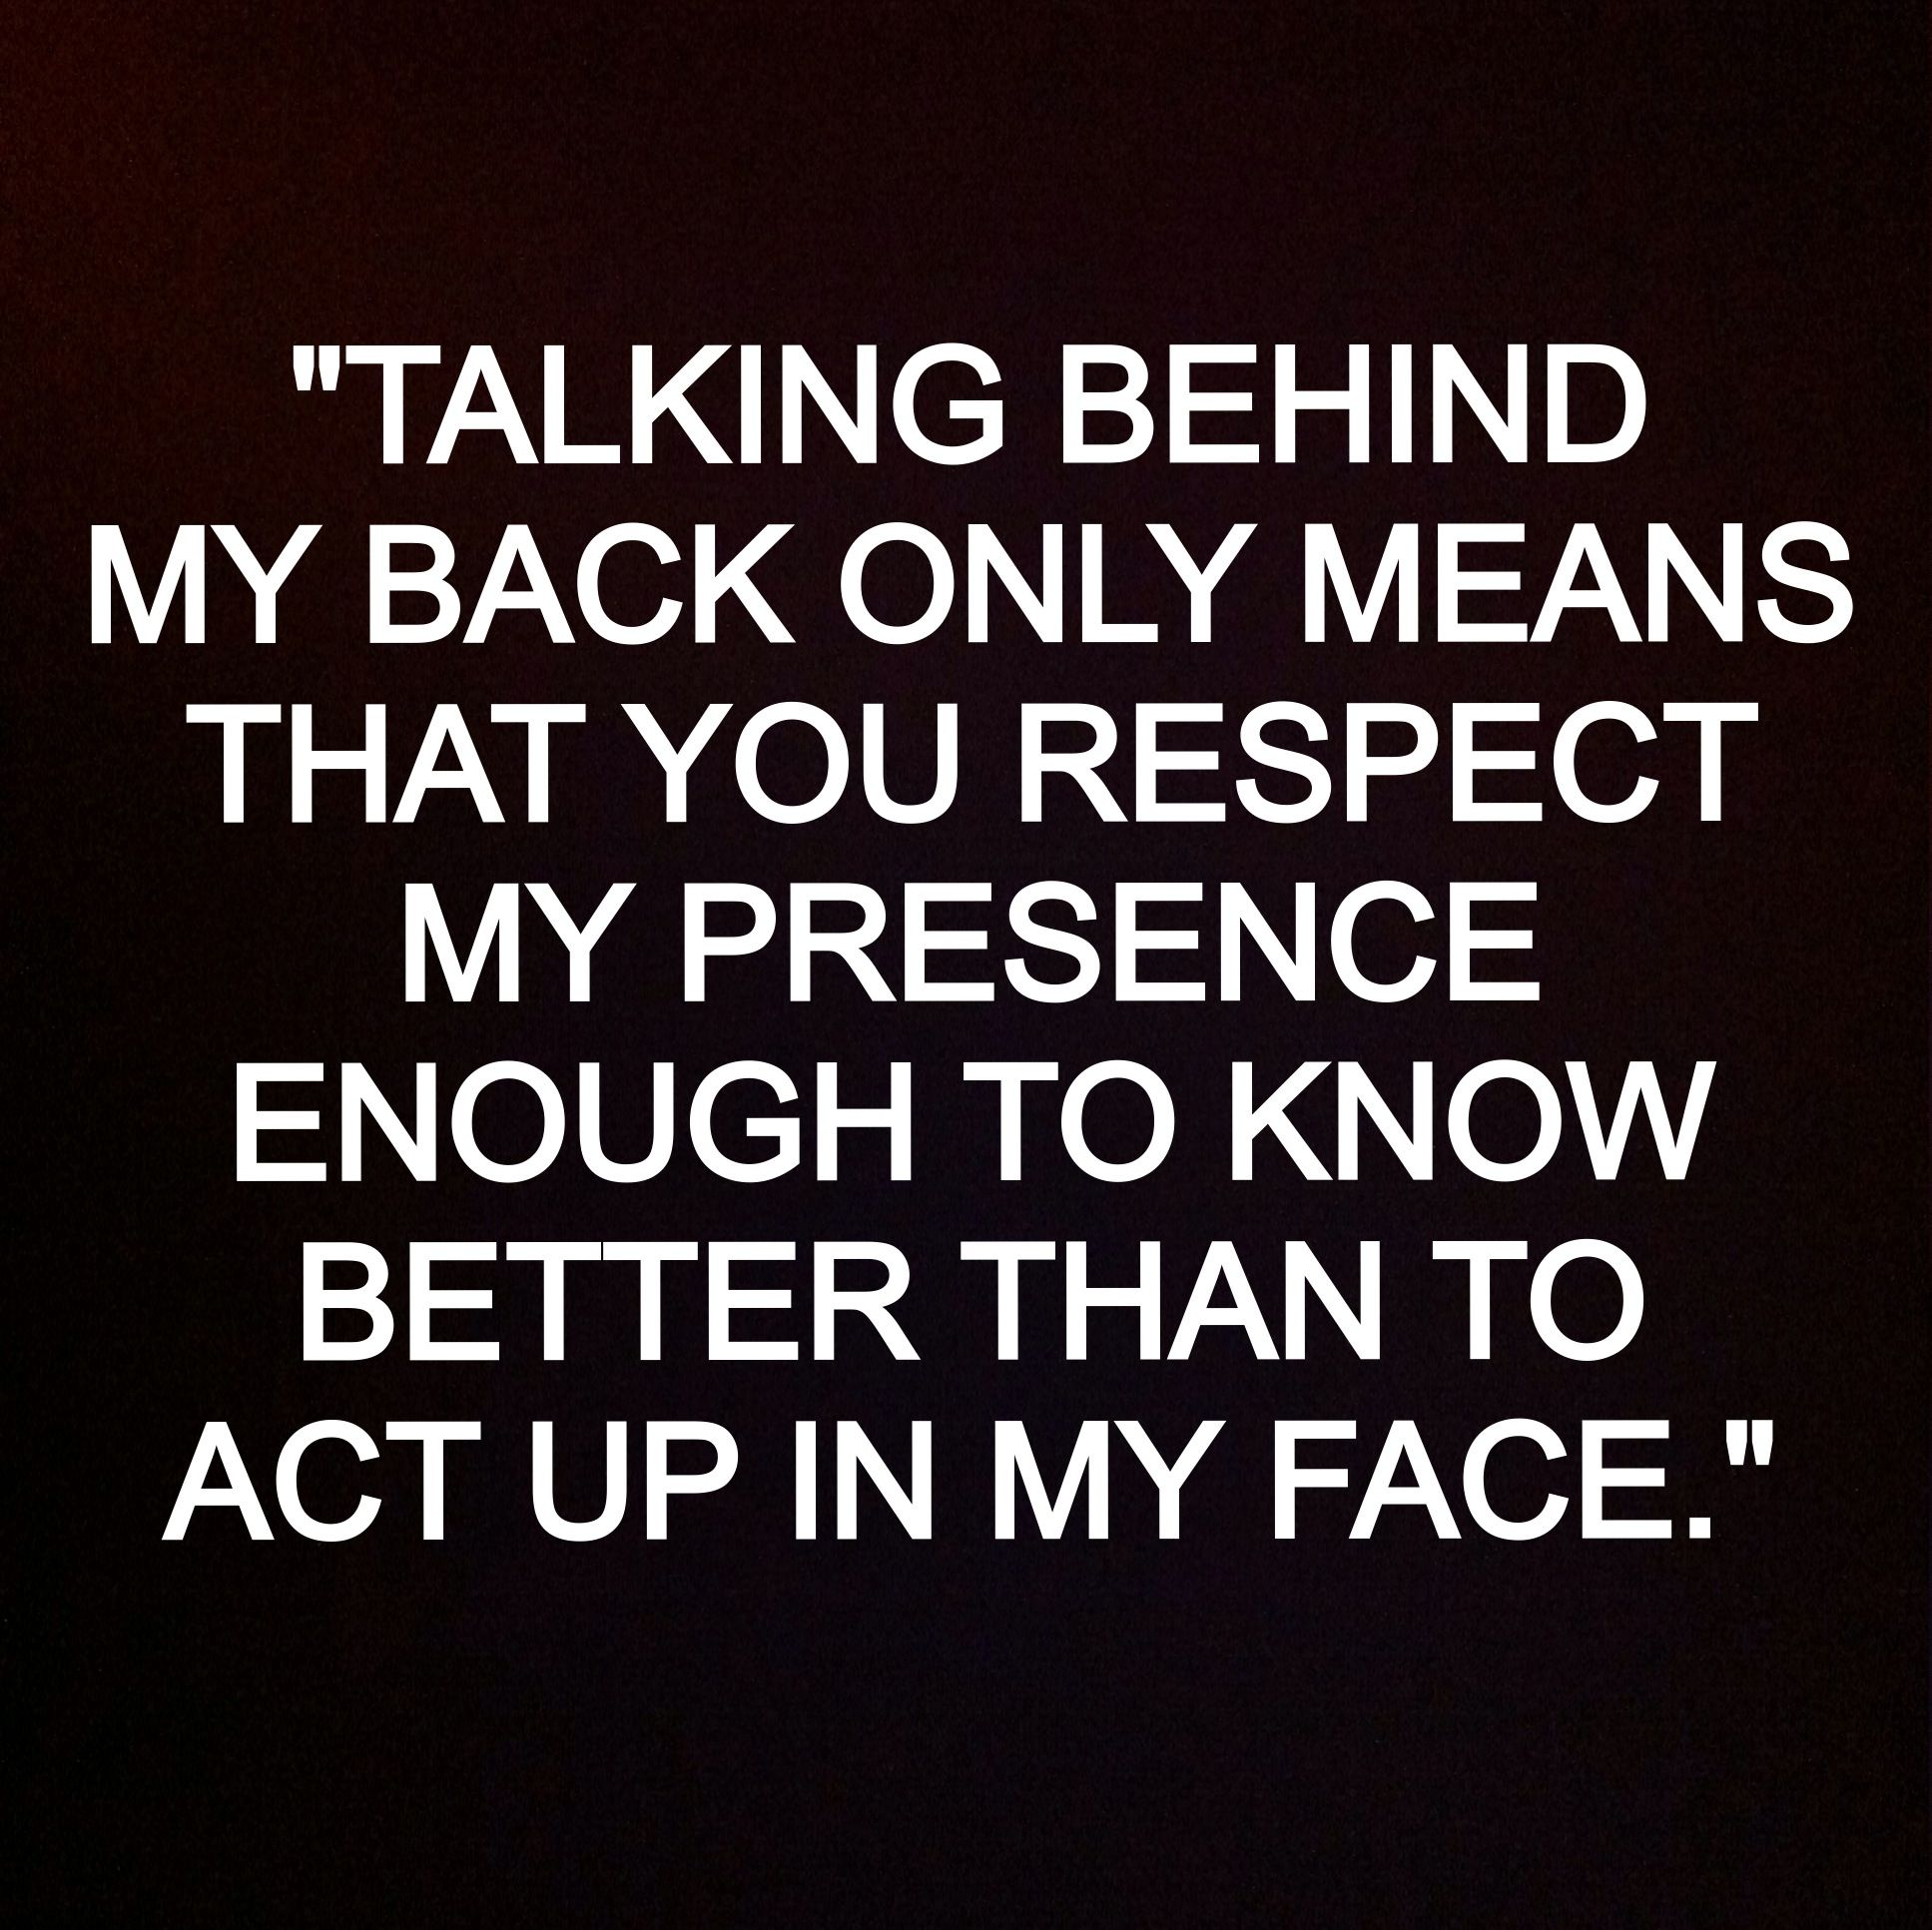 Talking Behind My Back Only Means That You Respect My Presence Enough To Know Bet Talking Behind My Back Quotes Talking Behind My Back Talking Behind Your Back